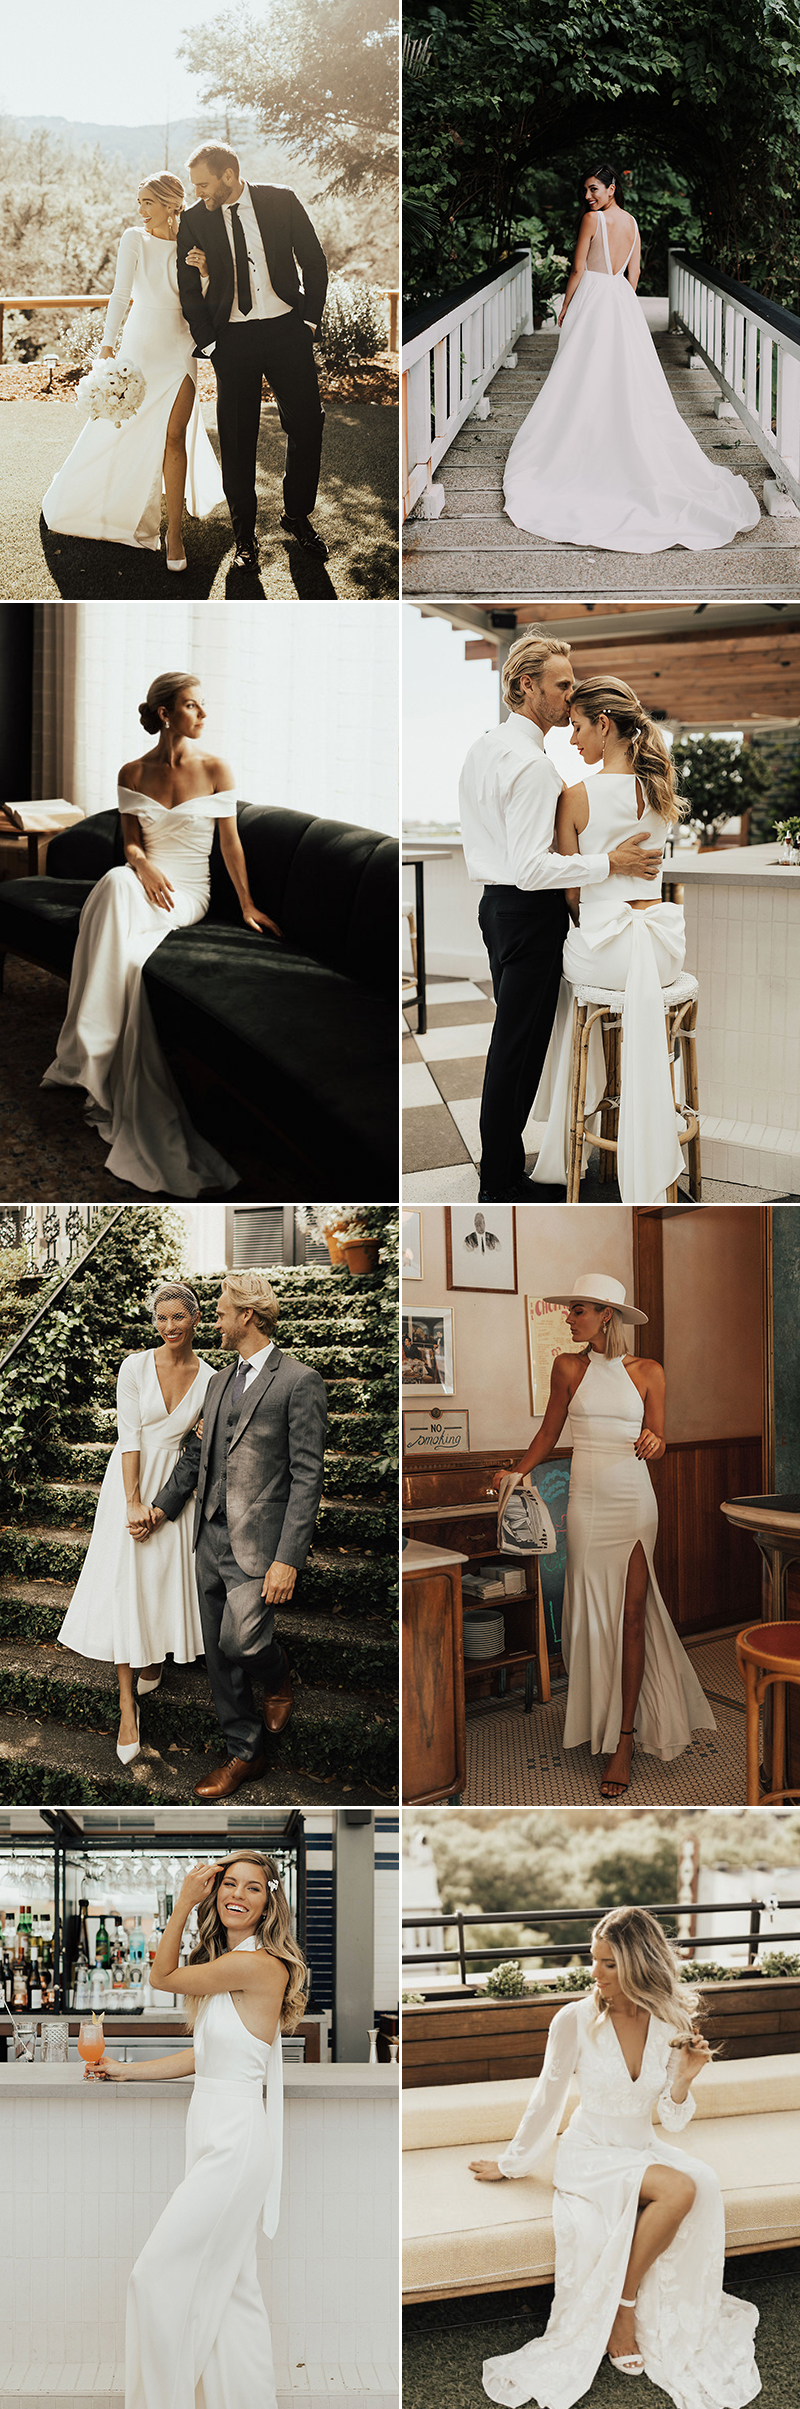 wedding dress styles from real brides - sleek minimal